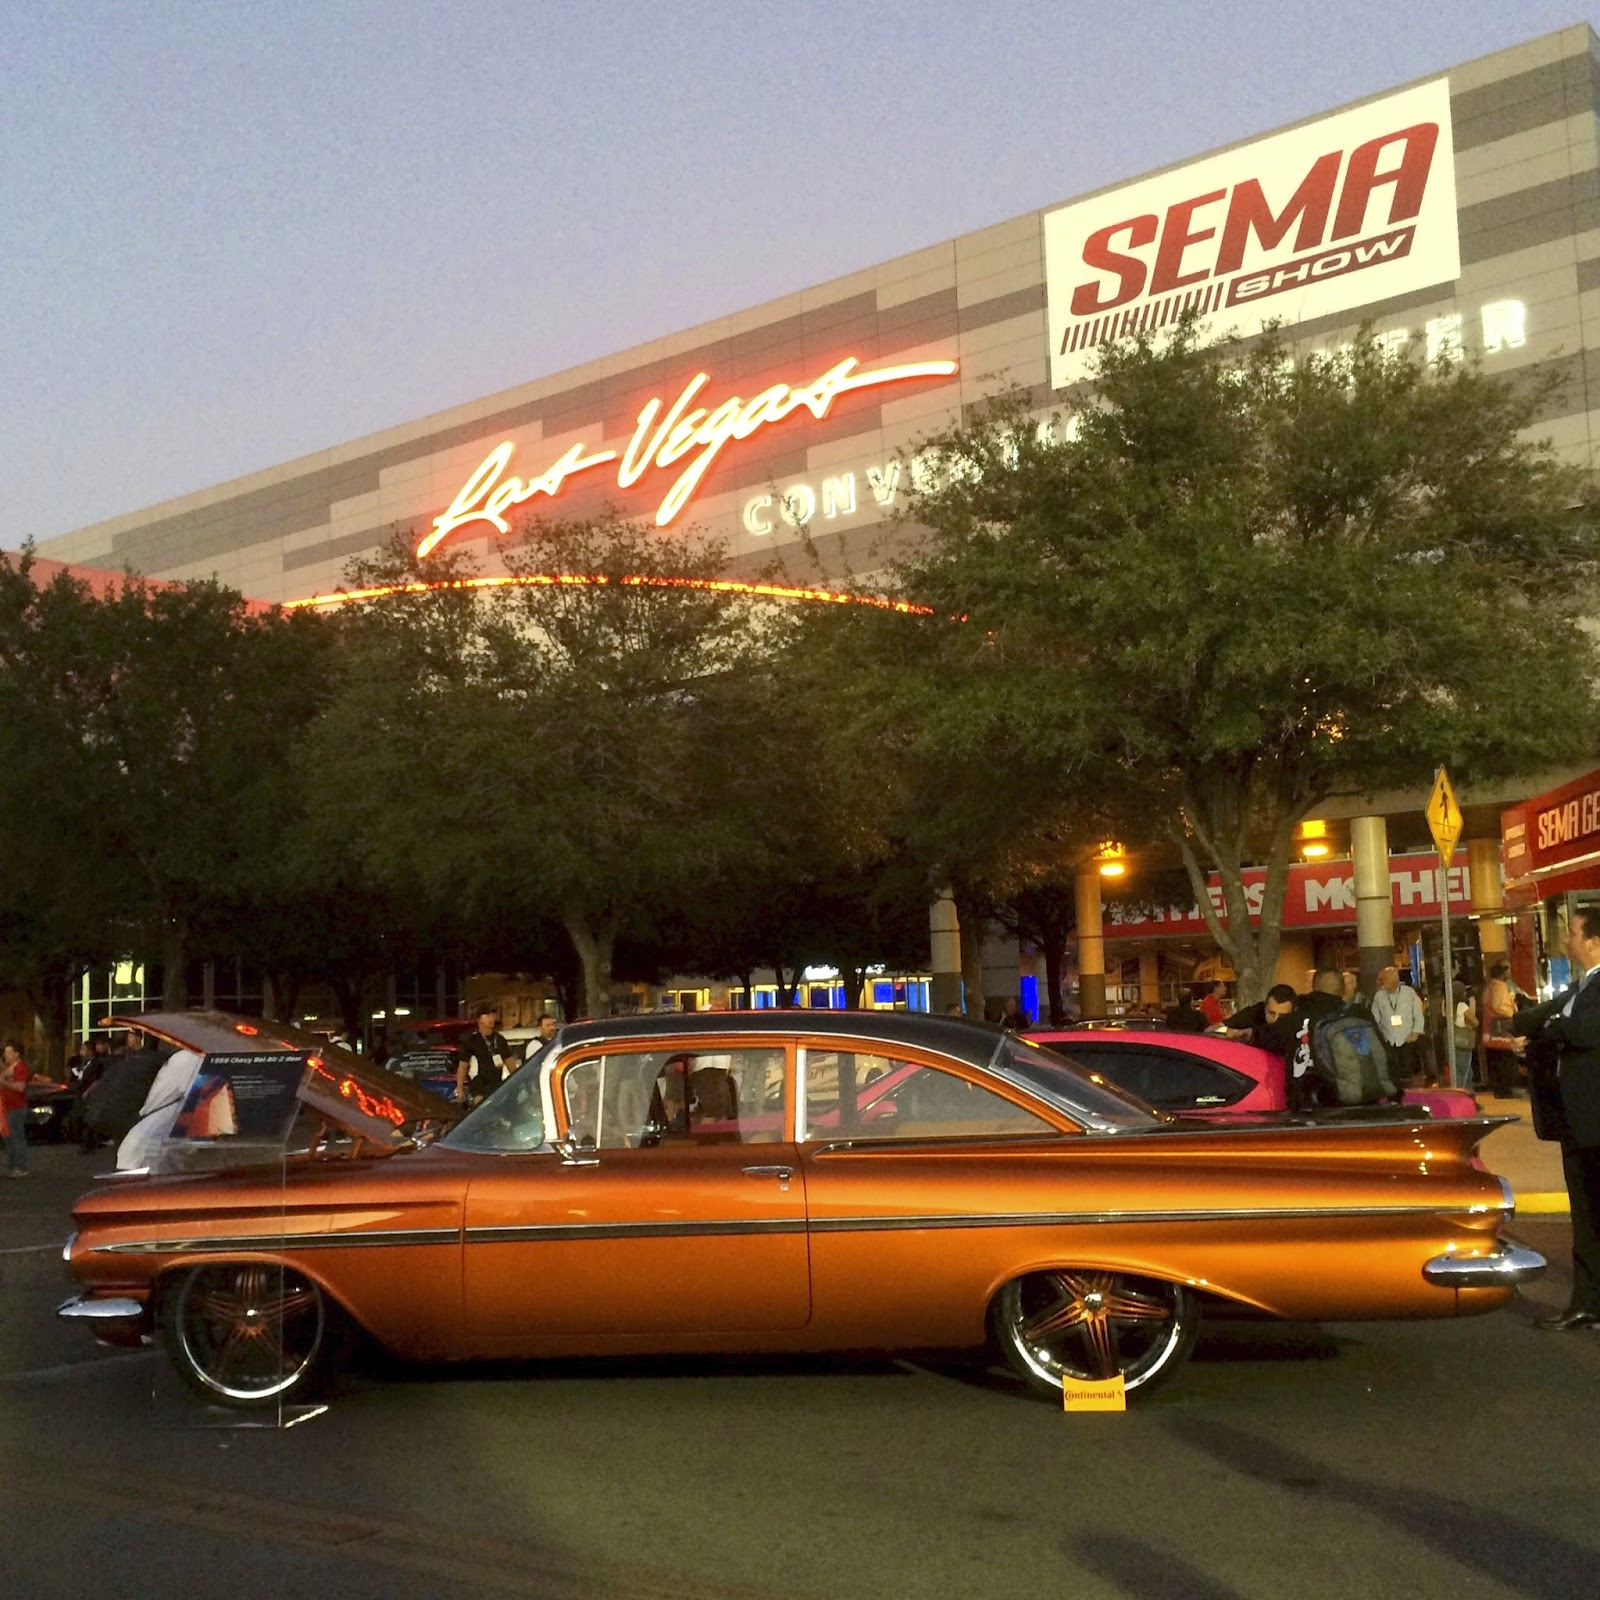 Covering Classic Cars Custom Cars And Hot Rods At The 2014 Sema Show